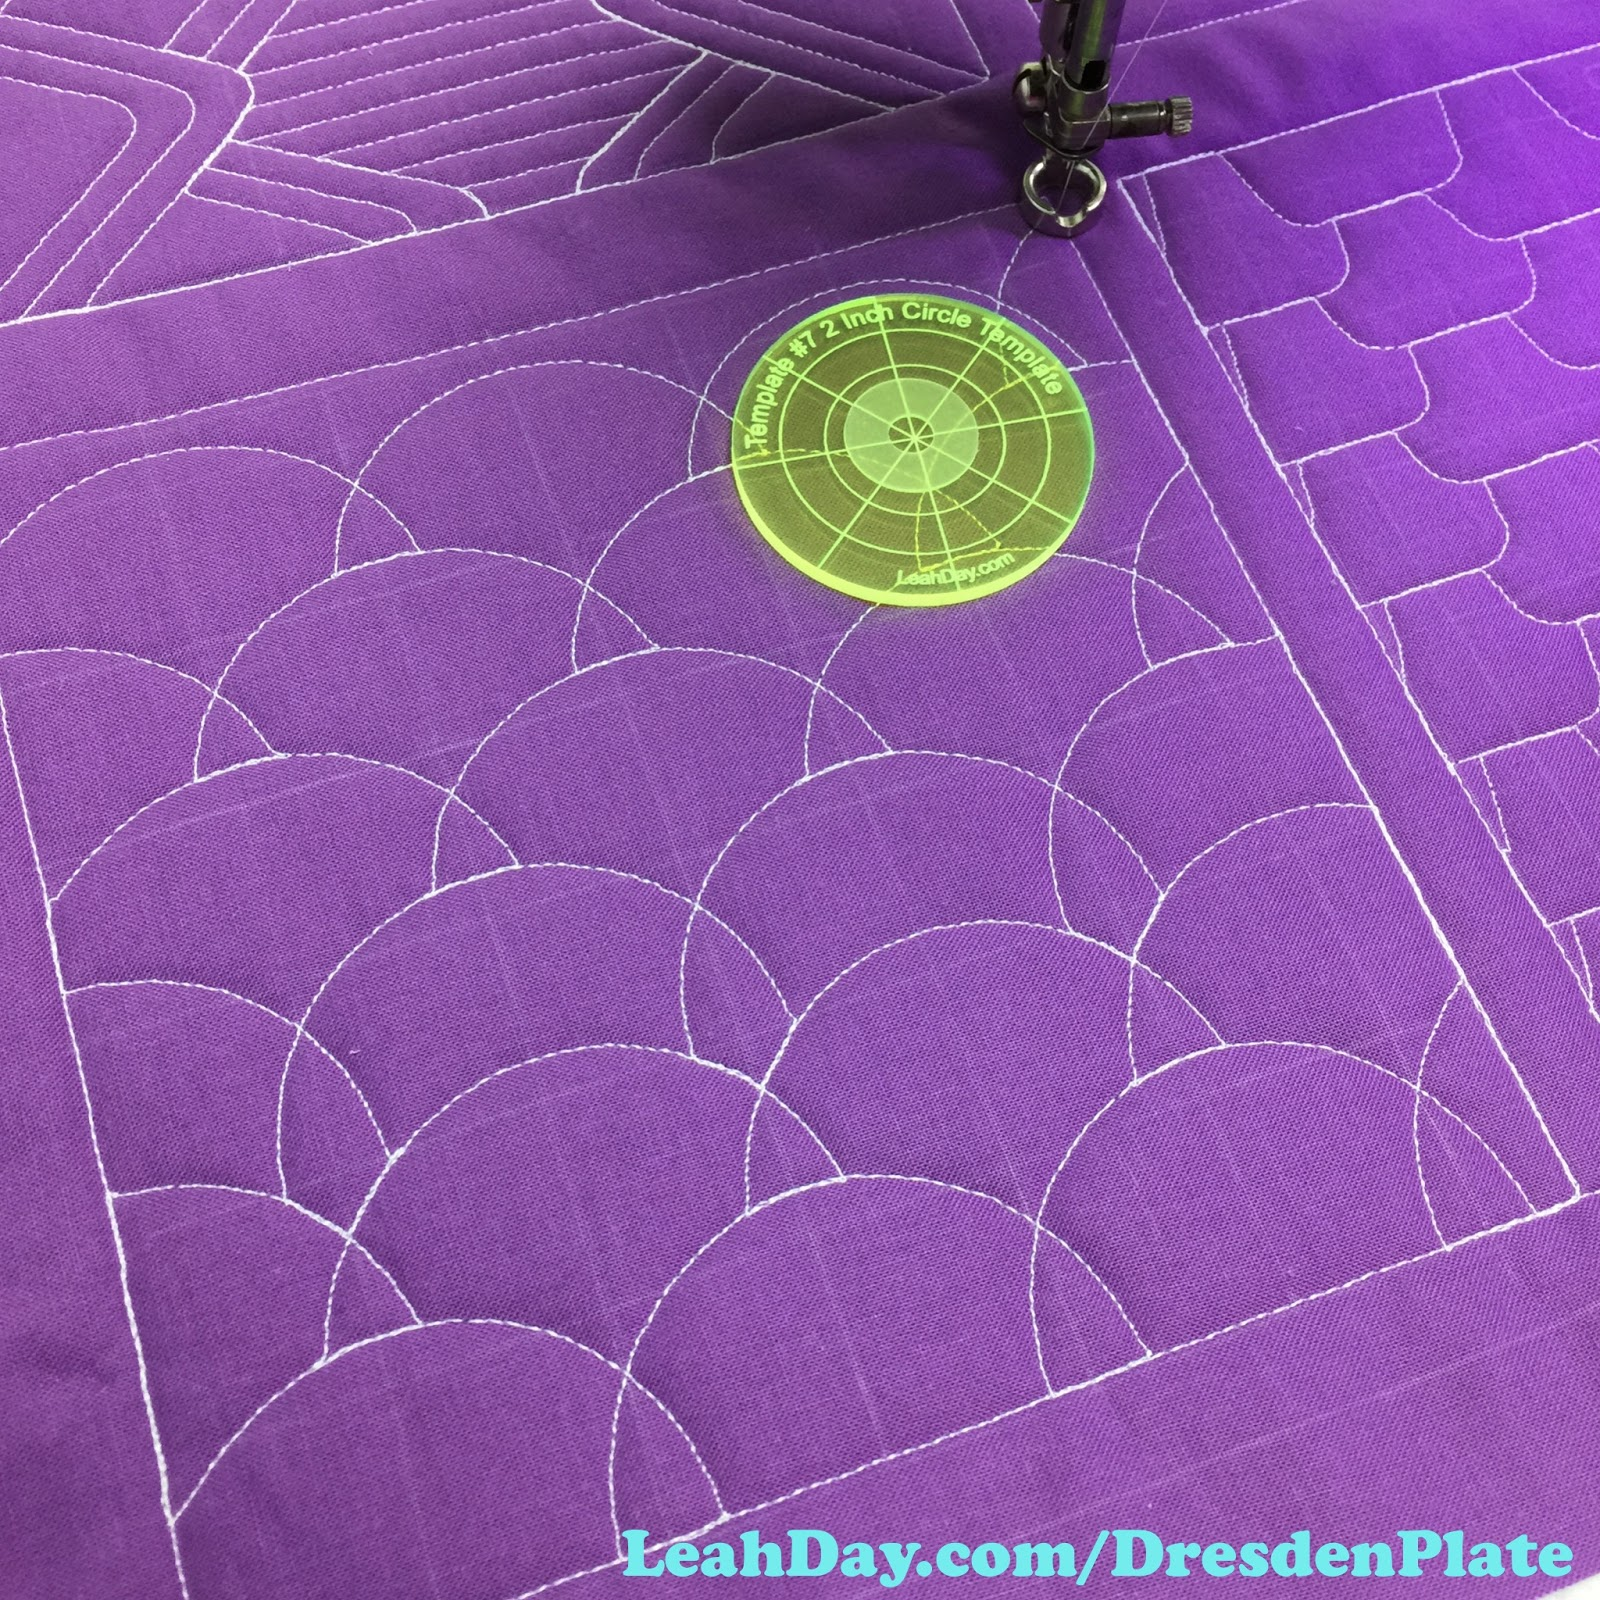 The free motion quilting project quilting basics 13 for Free motion templates